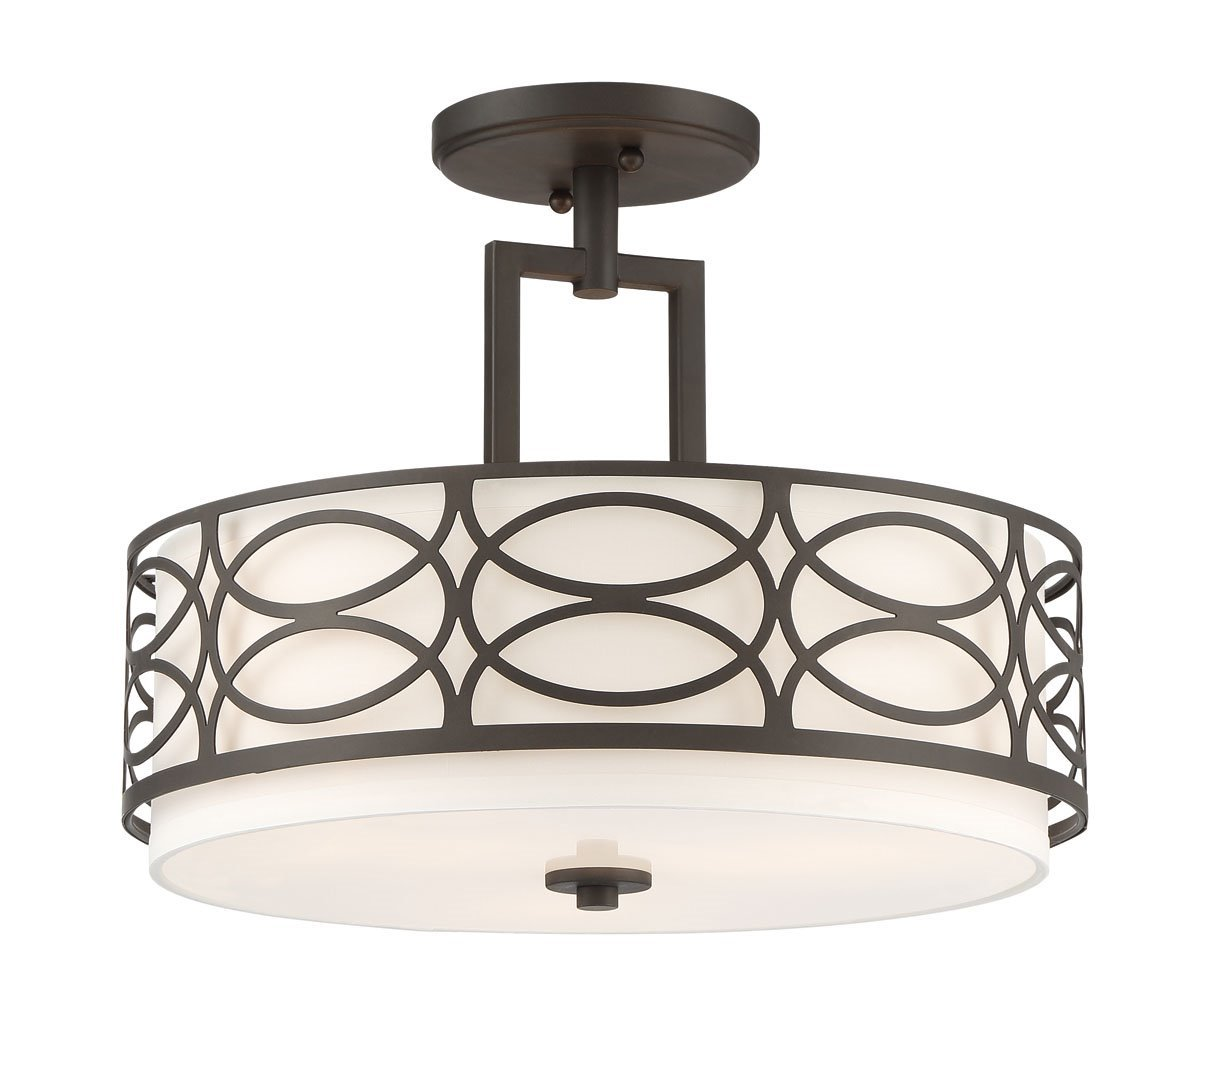 Kira Home Sienna 15'' 3-Light Semi Flush Mount Ceiling Light + Glass Diffuser, Oil-Rubbed Bronze Finish by Kira Home